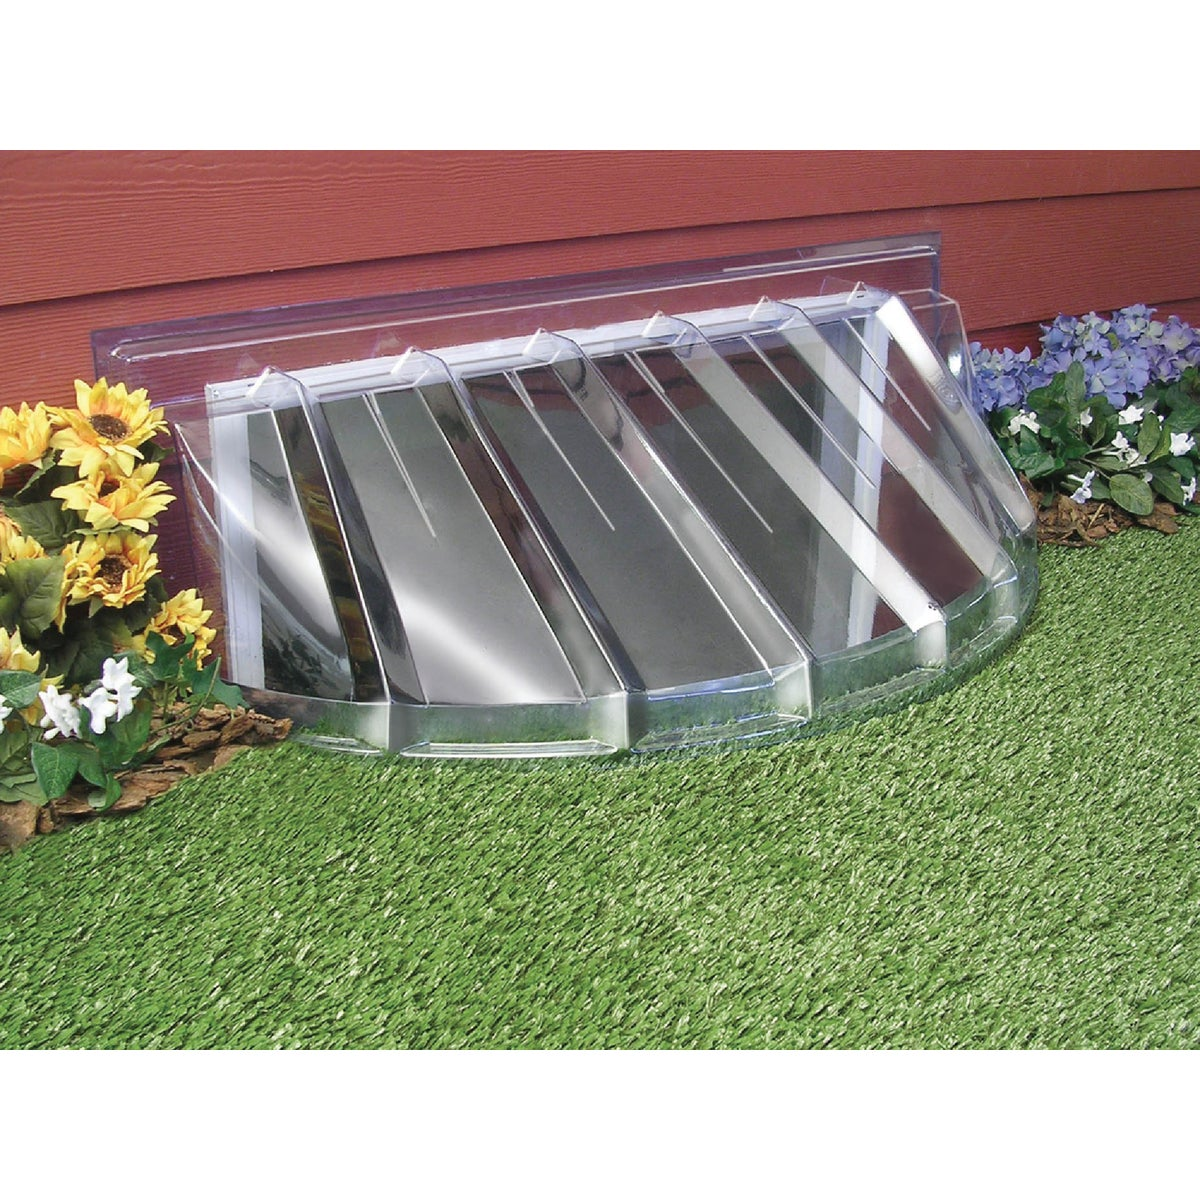 42X18 WINDOW WELL COVER - W4218 by Maccourt Products